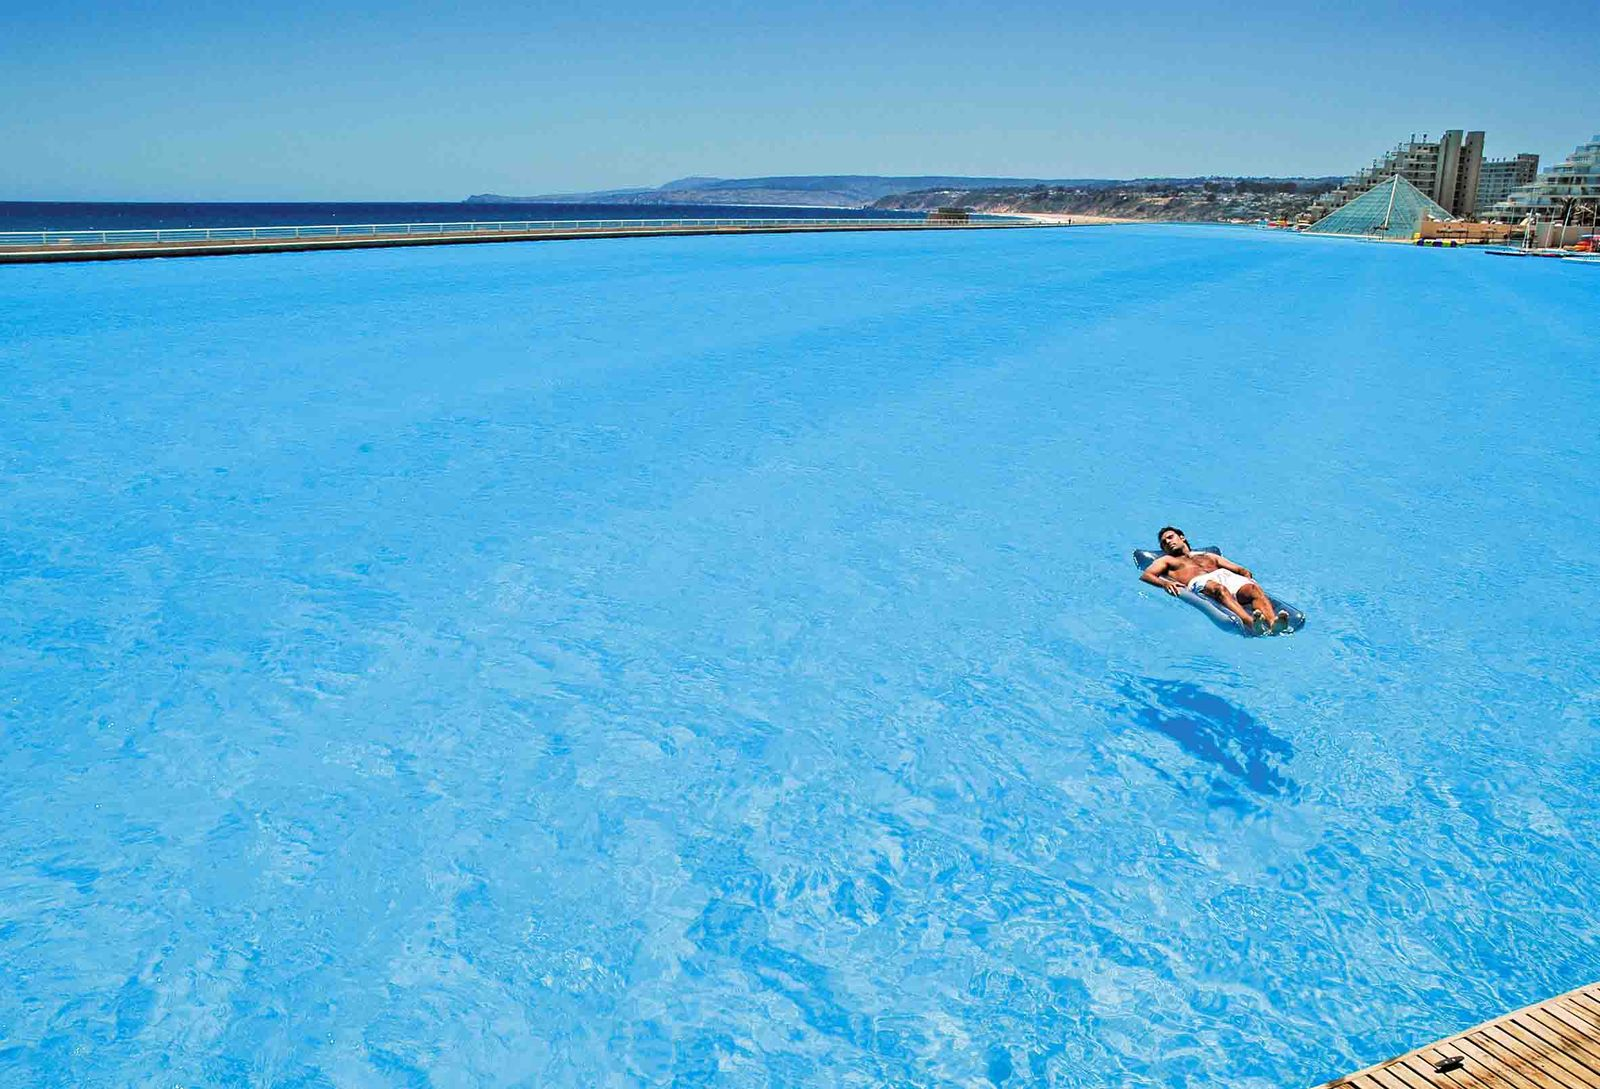 CHILE-GUINNESS WORLD RECORDS-SWIMMING